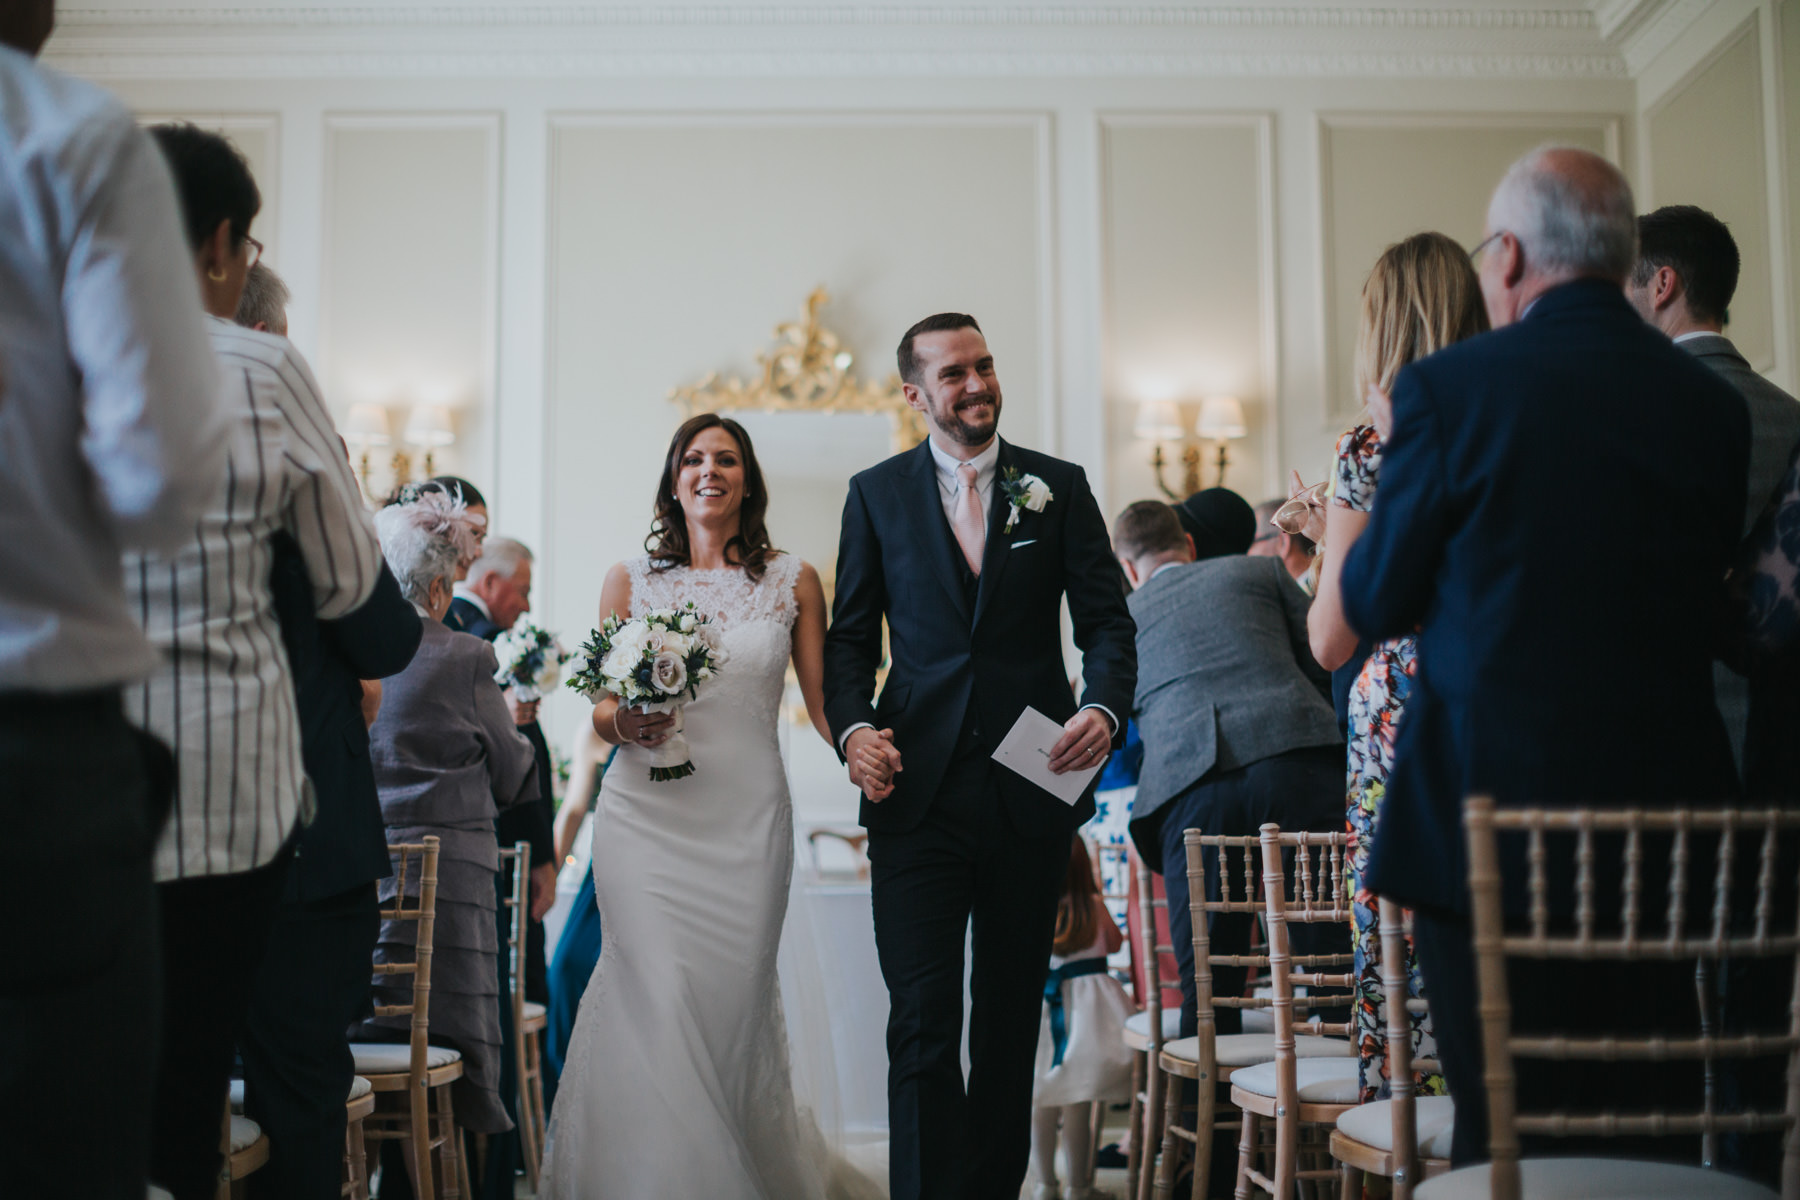 Louise & Mike | Bowcliffe Hall Wedding 57